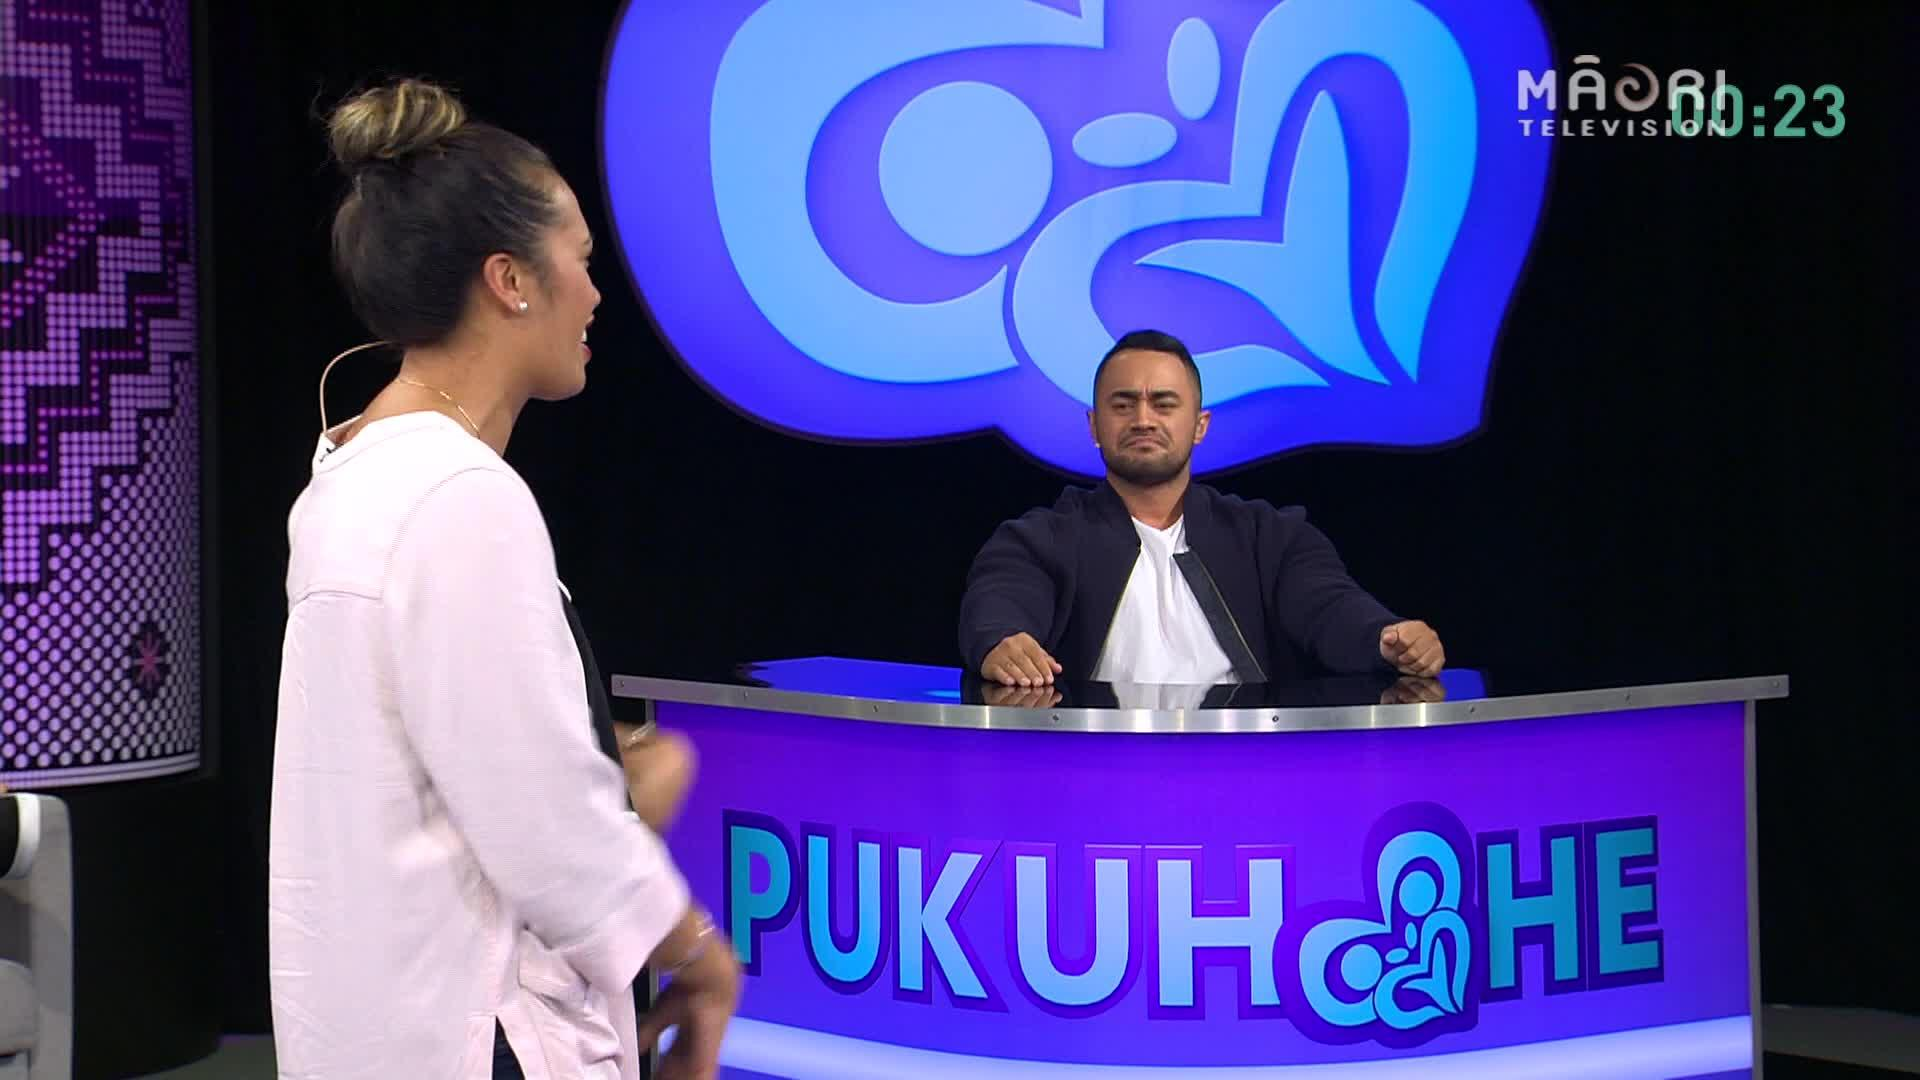 Video for Pukuhohe, Series 3 Episode 15